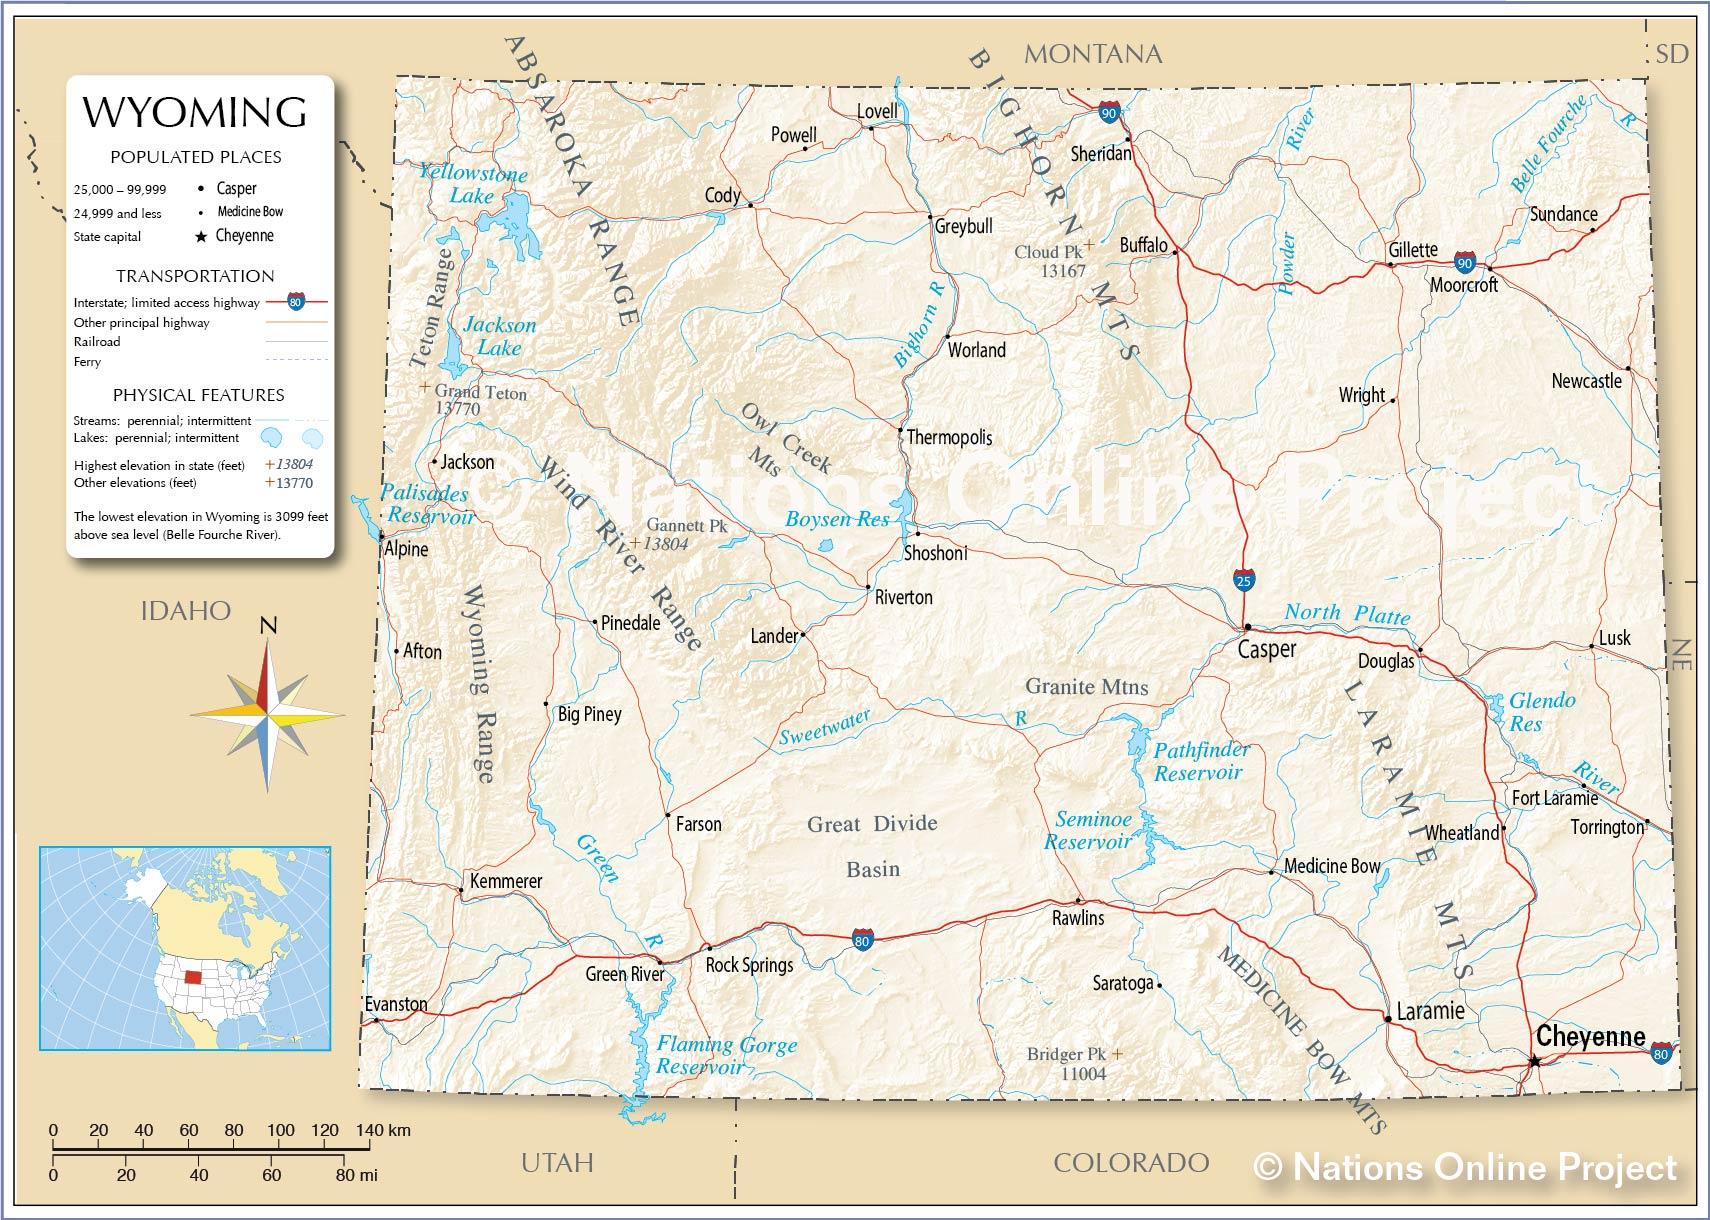 Reference Map Of Wyoming USA Nations Online Project - Cities in wyoming map